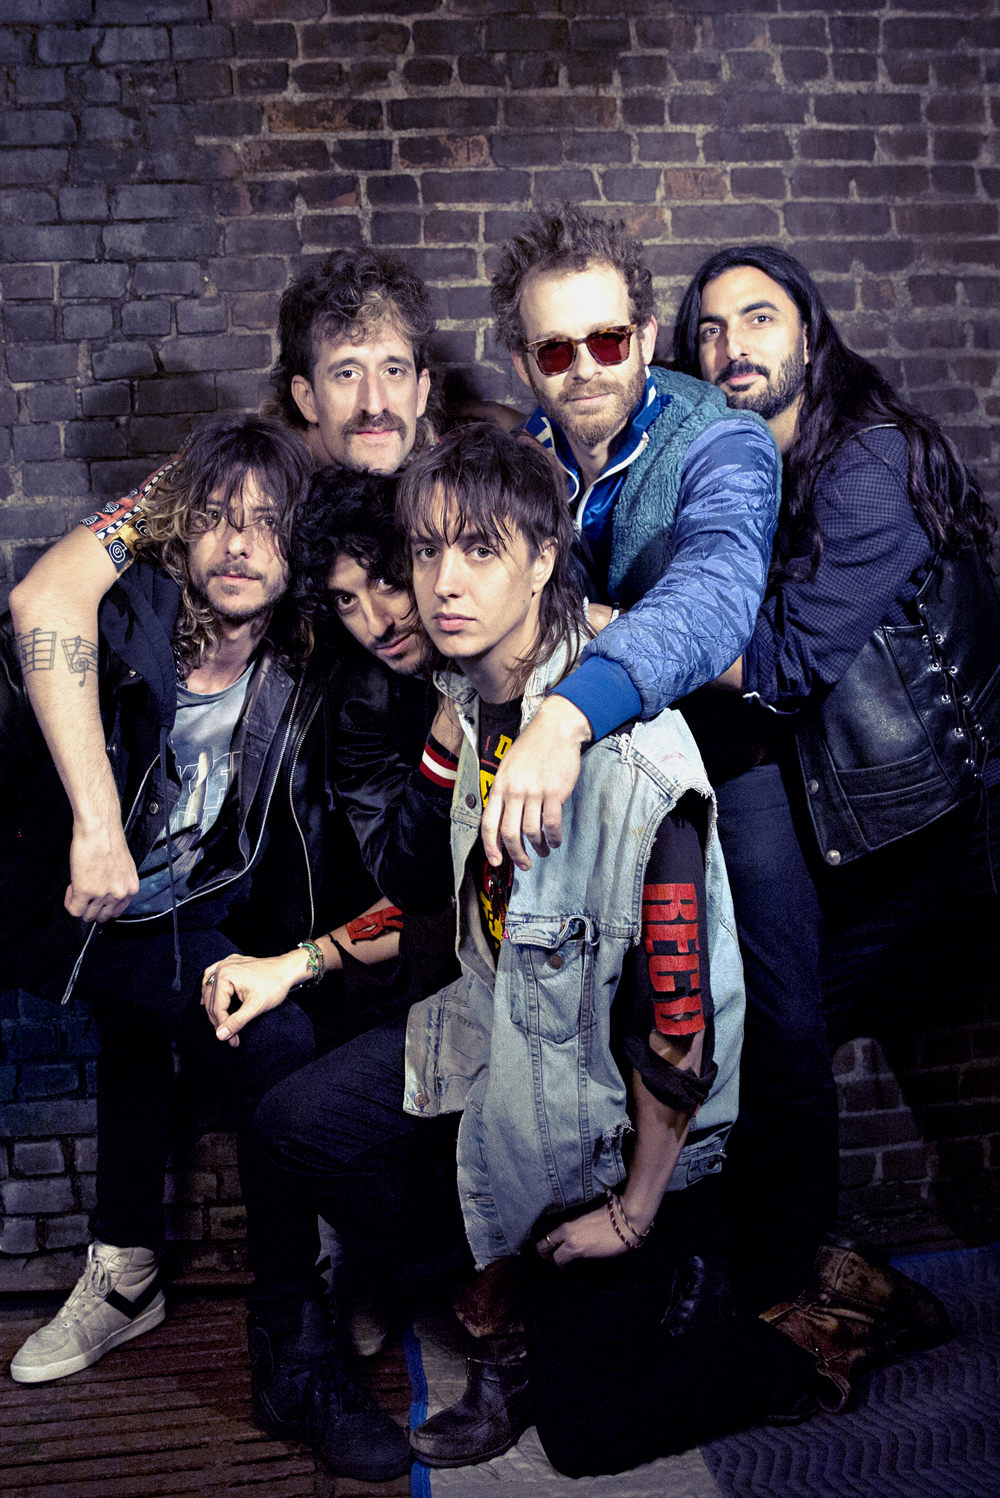 Julian Casablancas and the Voidz